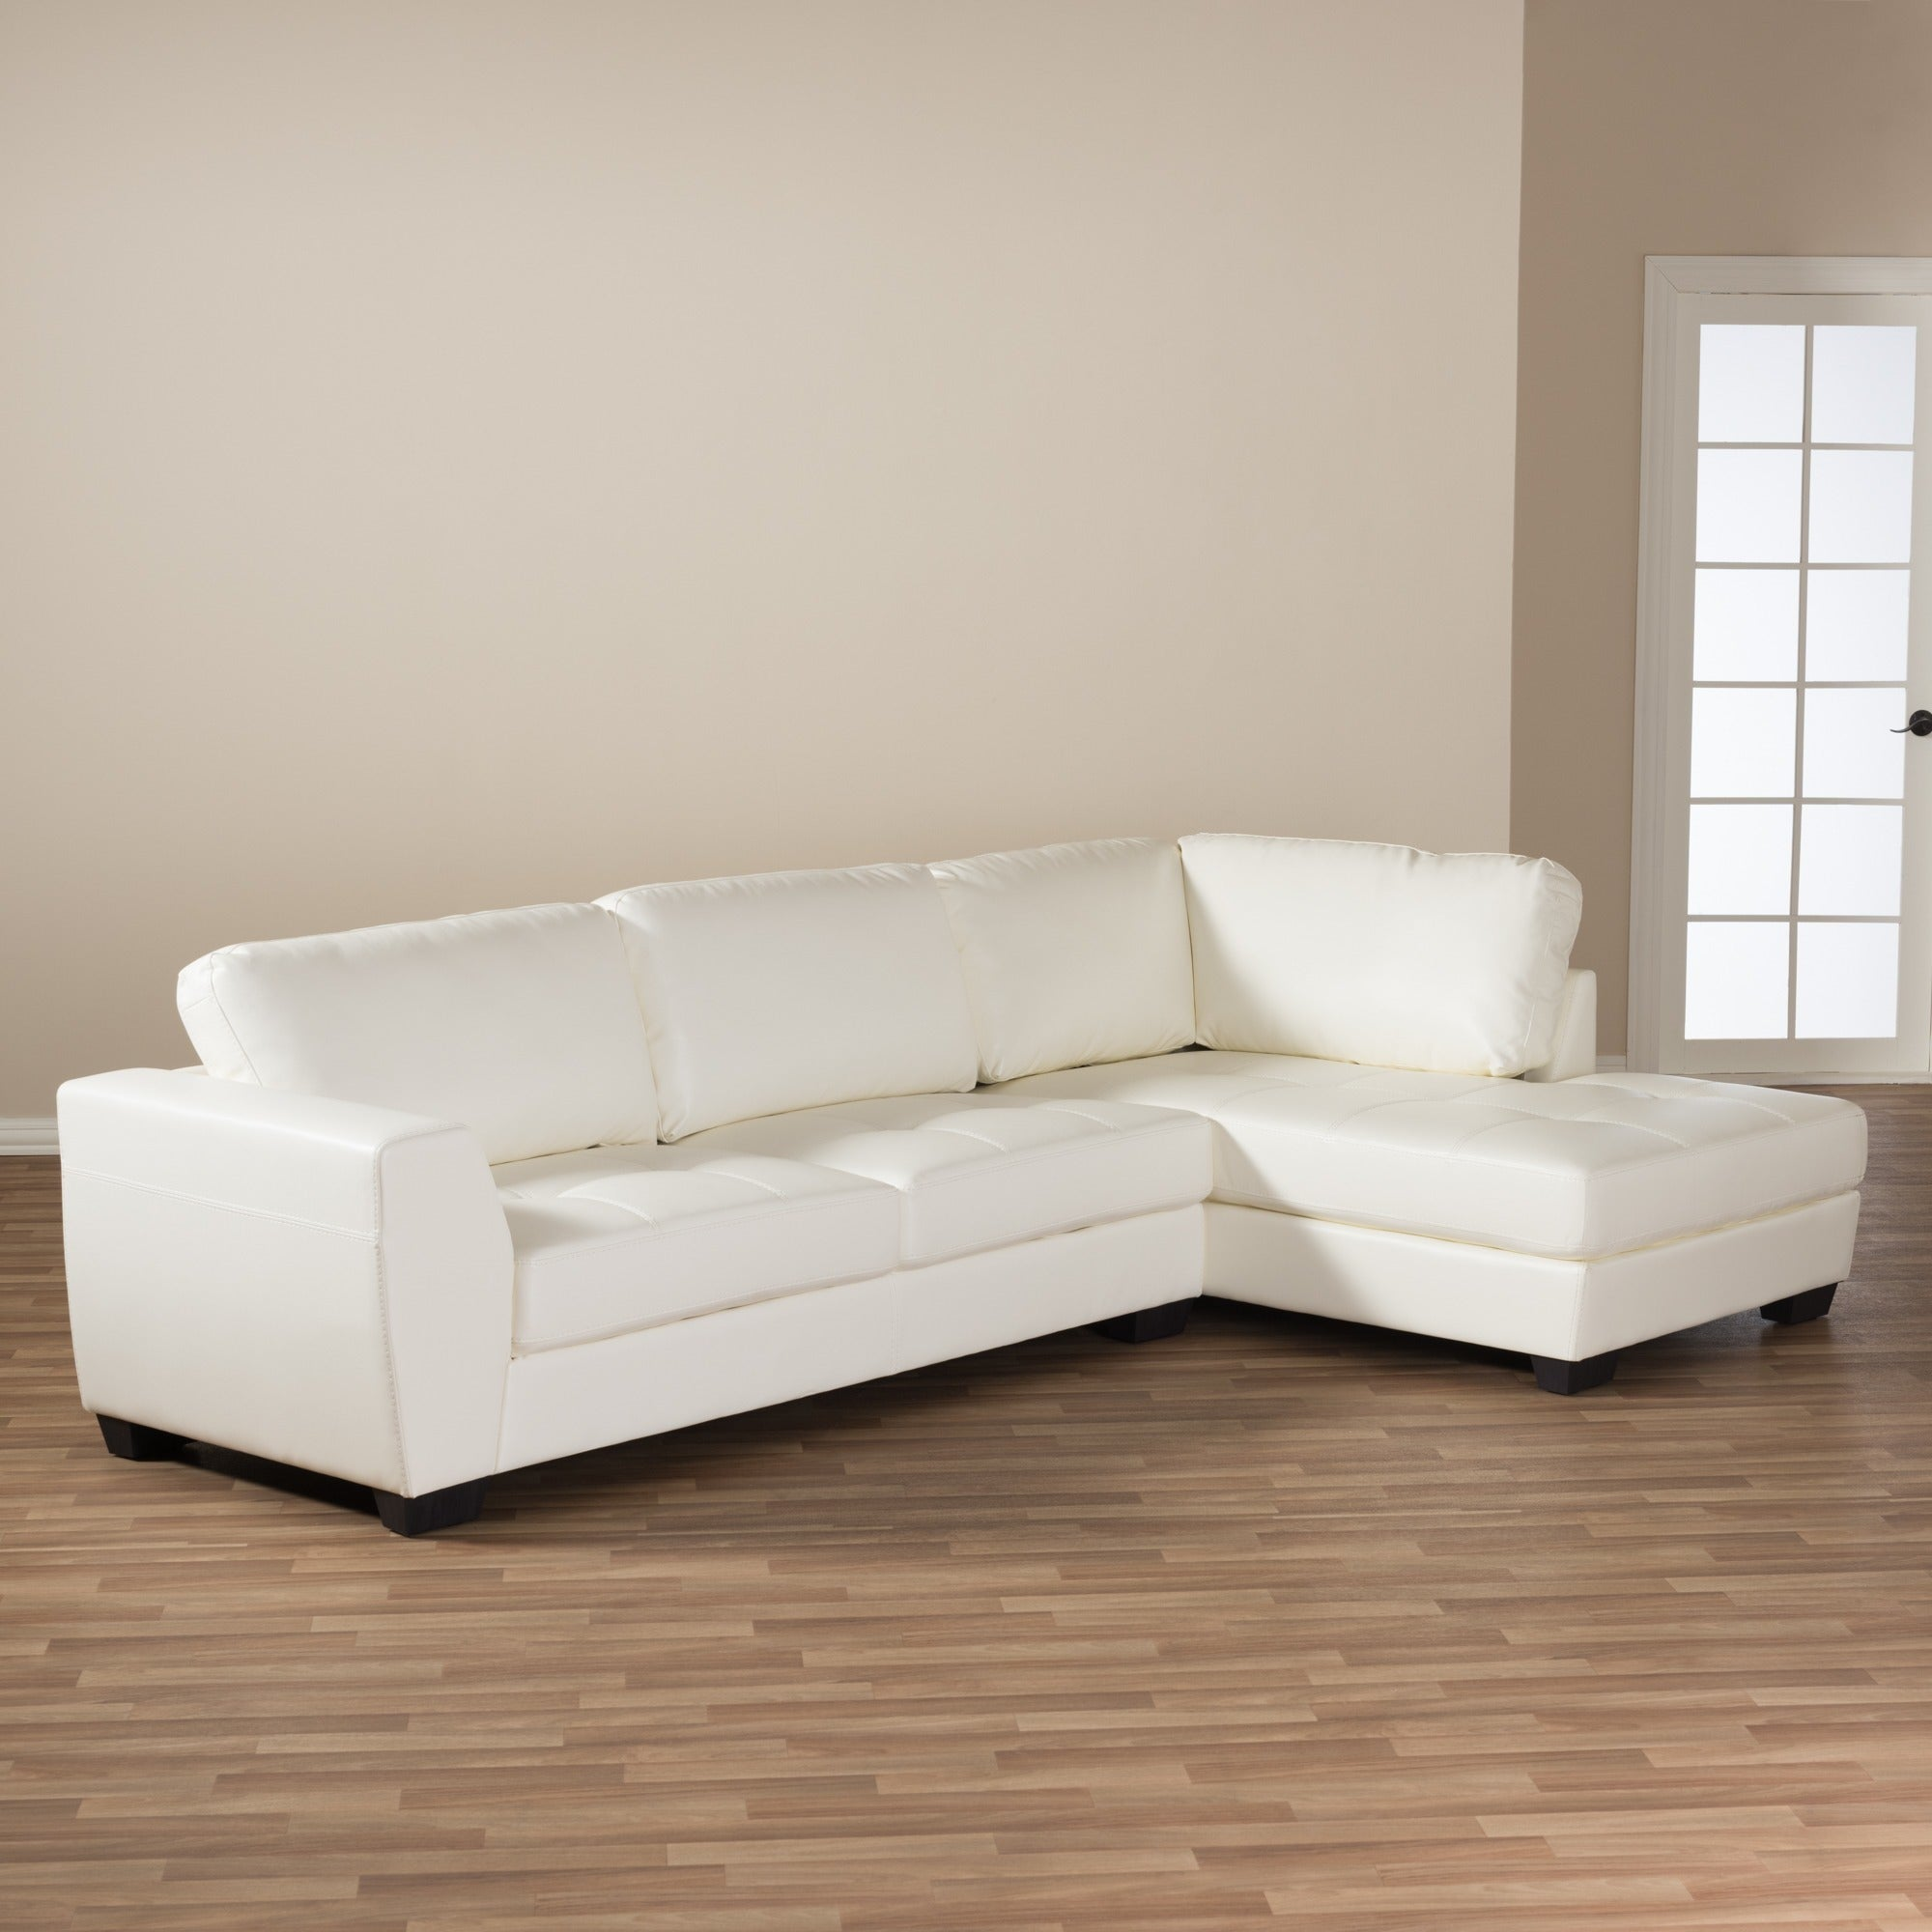 baxton com selma modern leather sofas sectional studio wonderful white with couch of aifaresidency sofa